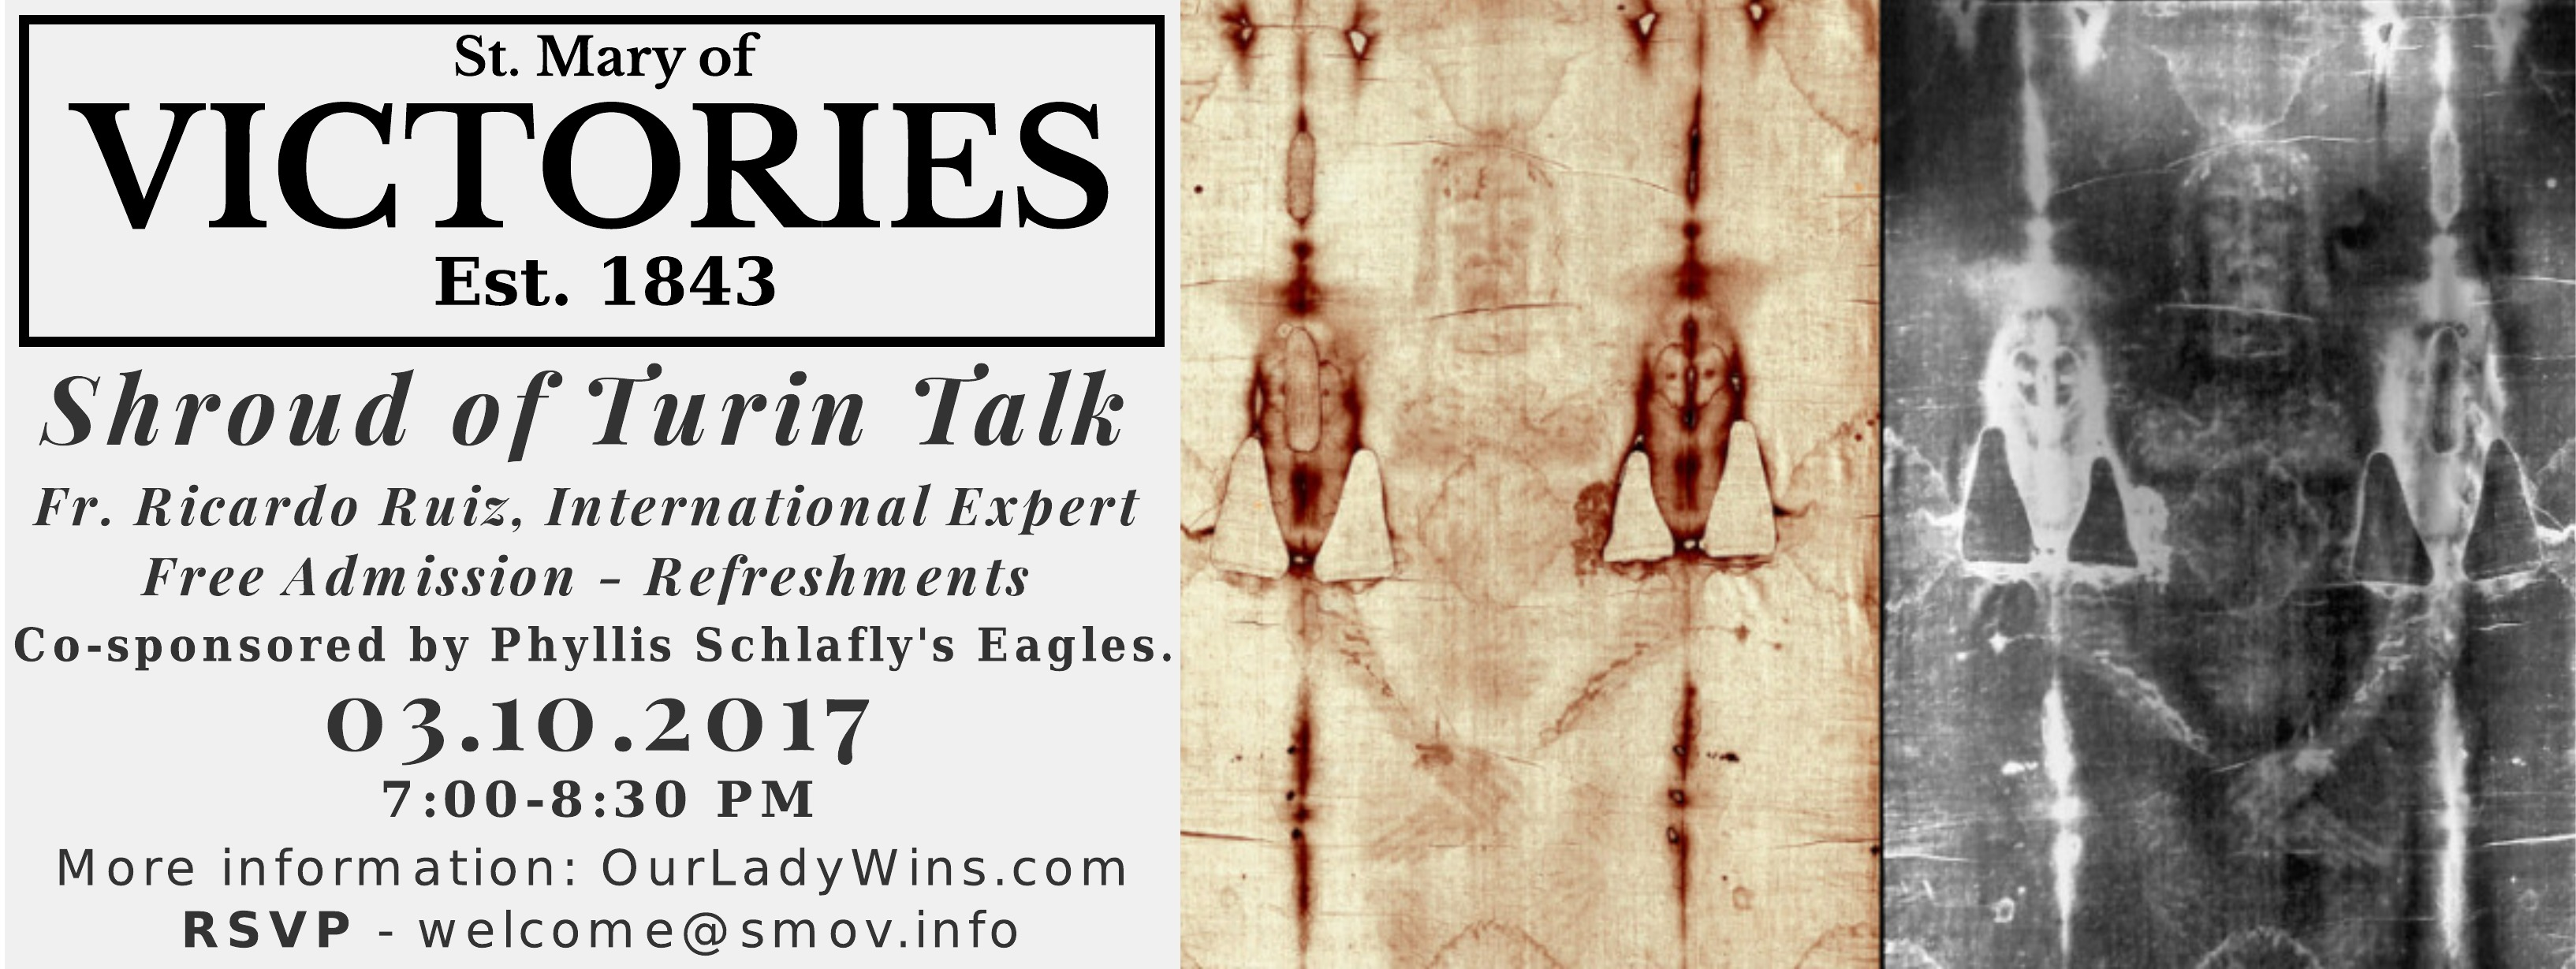 Shroud of Turin Talk